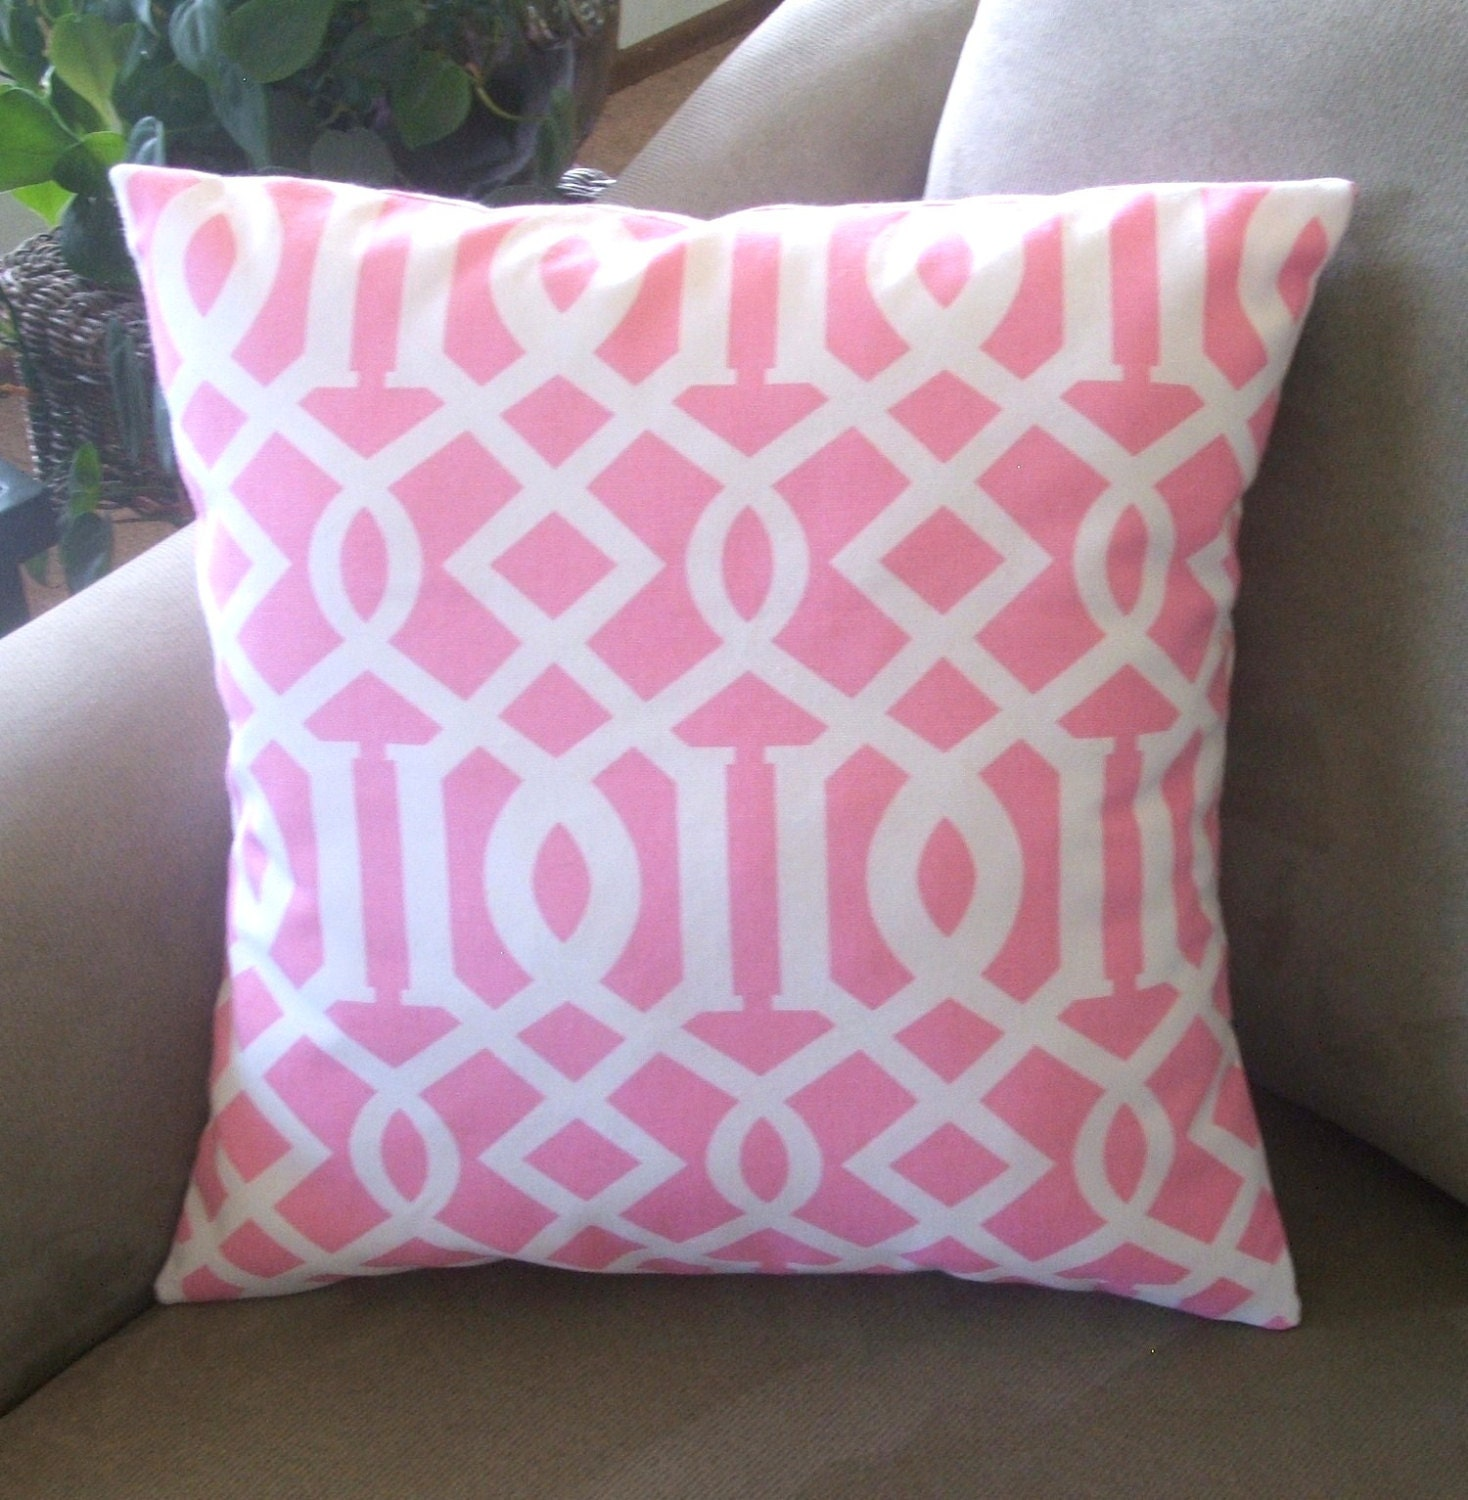 15 Inch Throw Pillow Covers : Pillow Cover, Pink and White, Geometric Design, Decorative Pillow Cover, Throw Pillow Cover, 18 ...